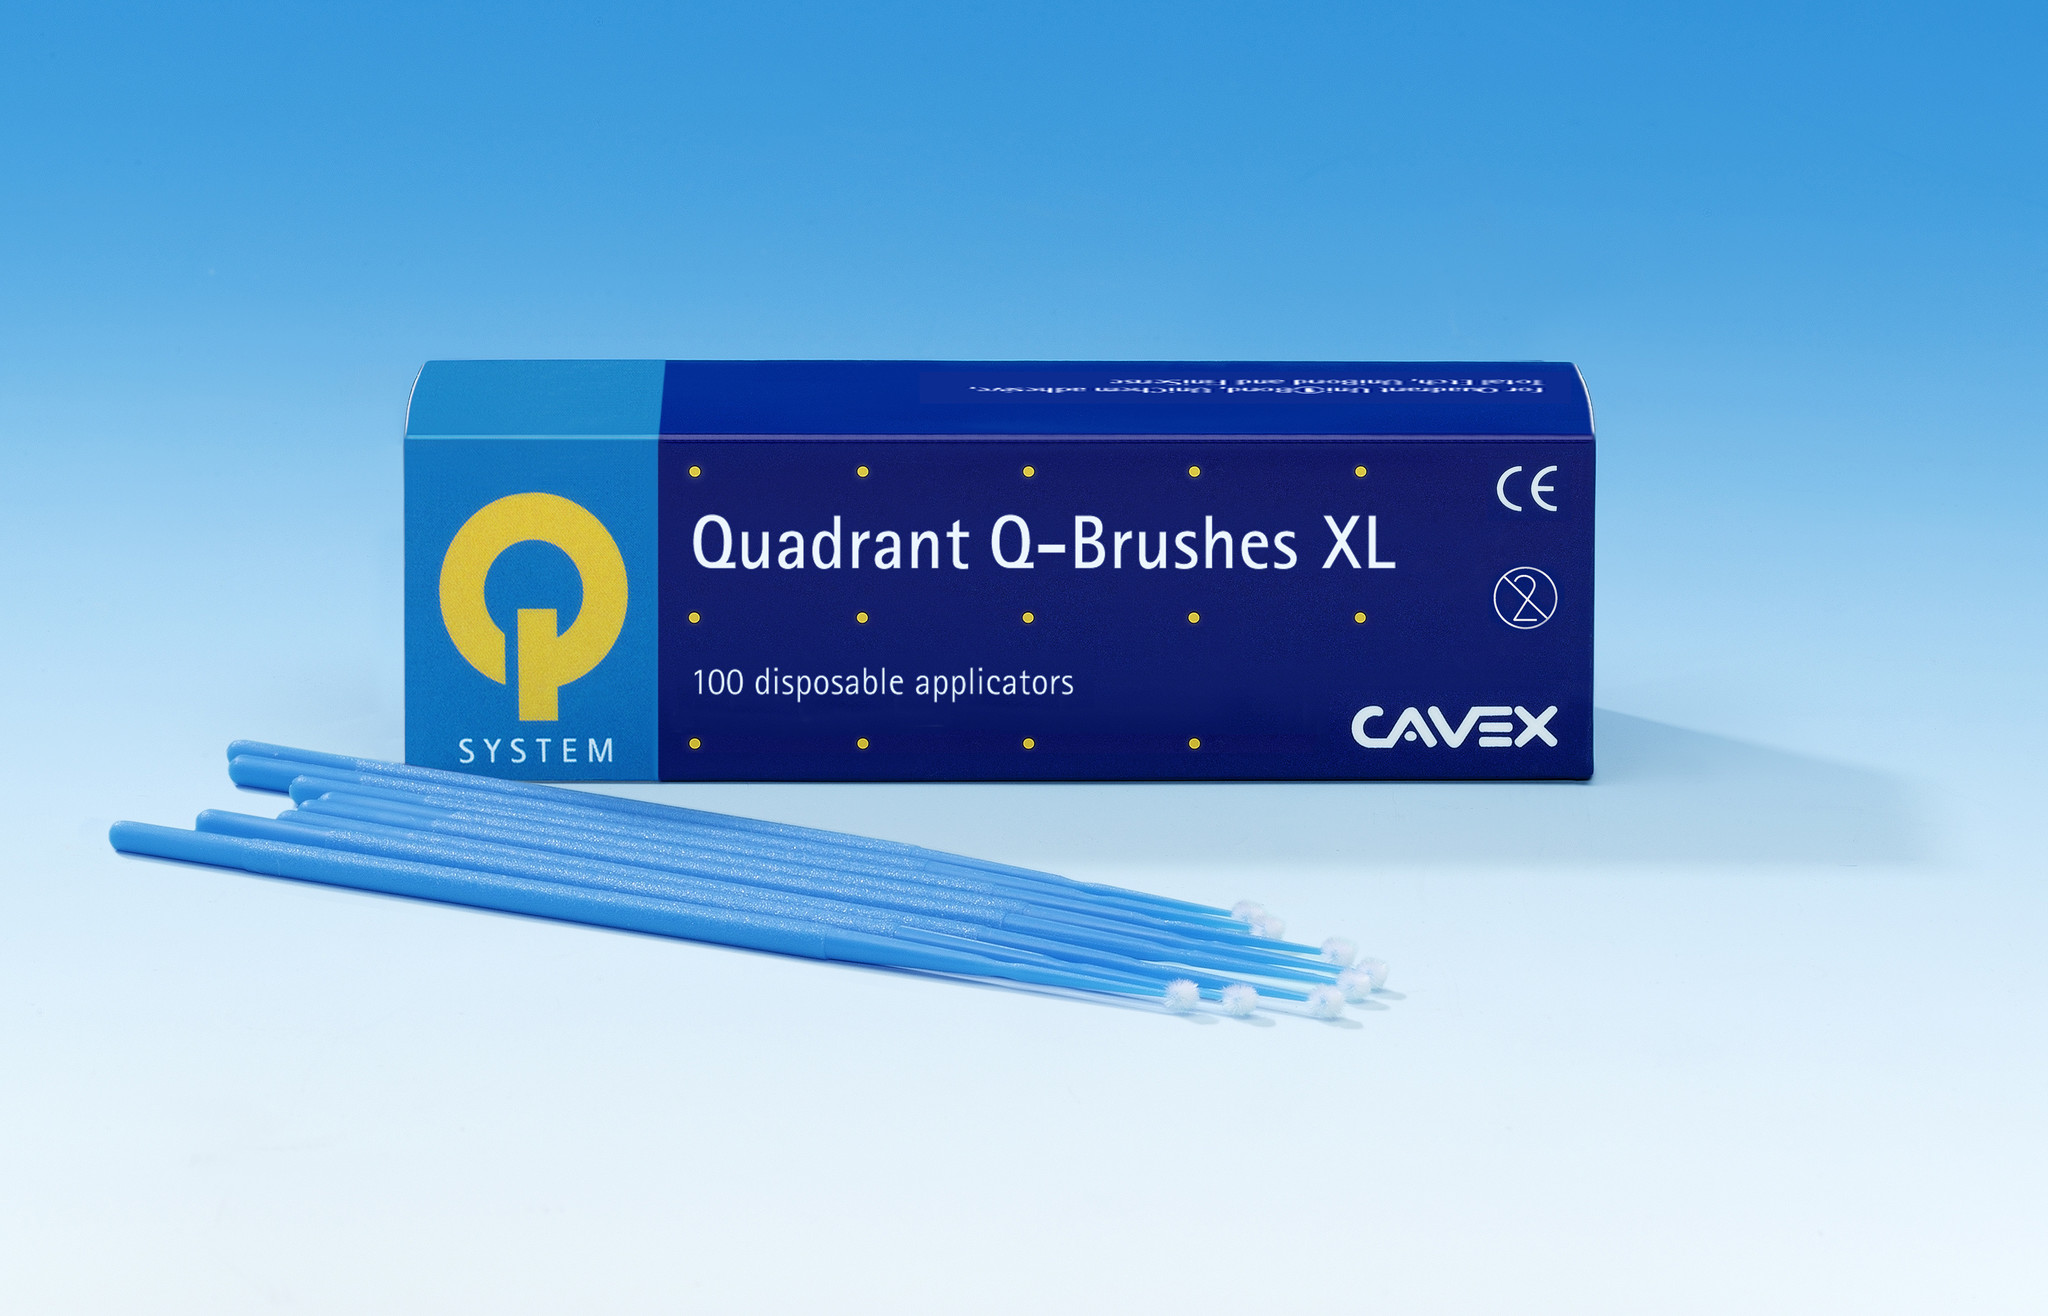 Cavex Quadrant Q-Brushes XL